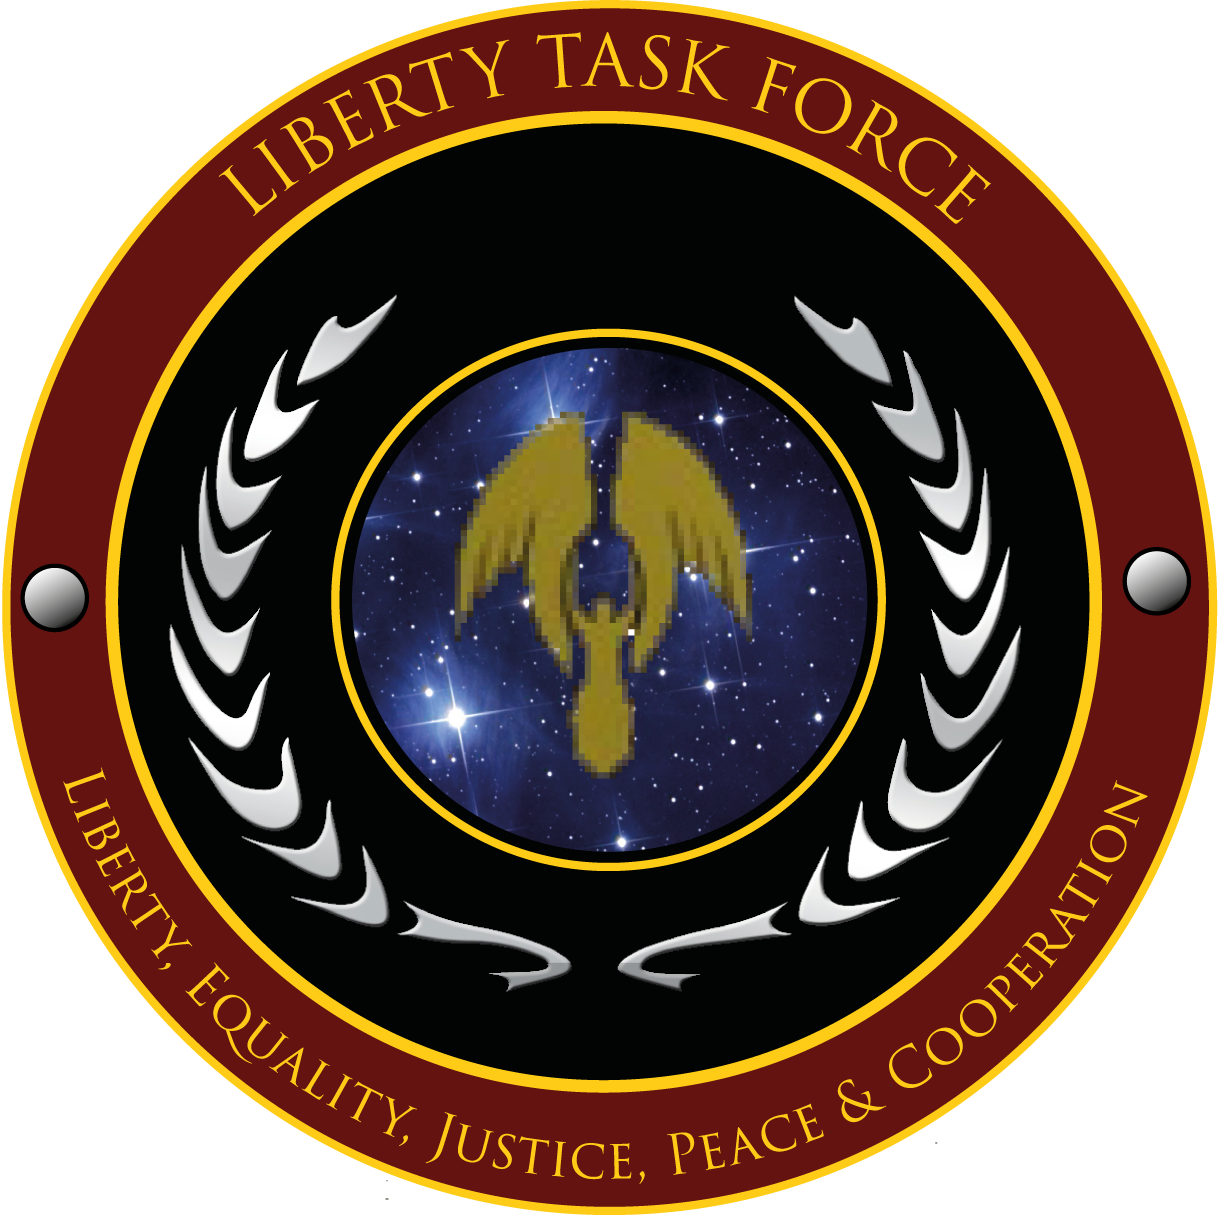 Liberty Task Force Crest